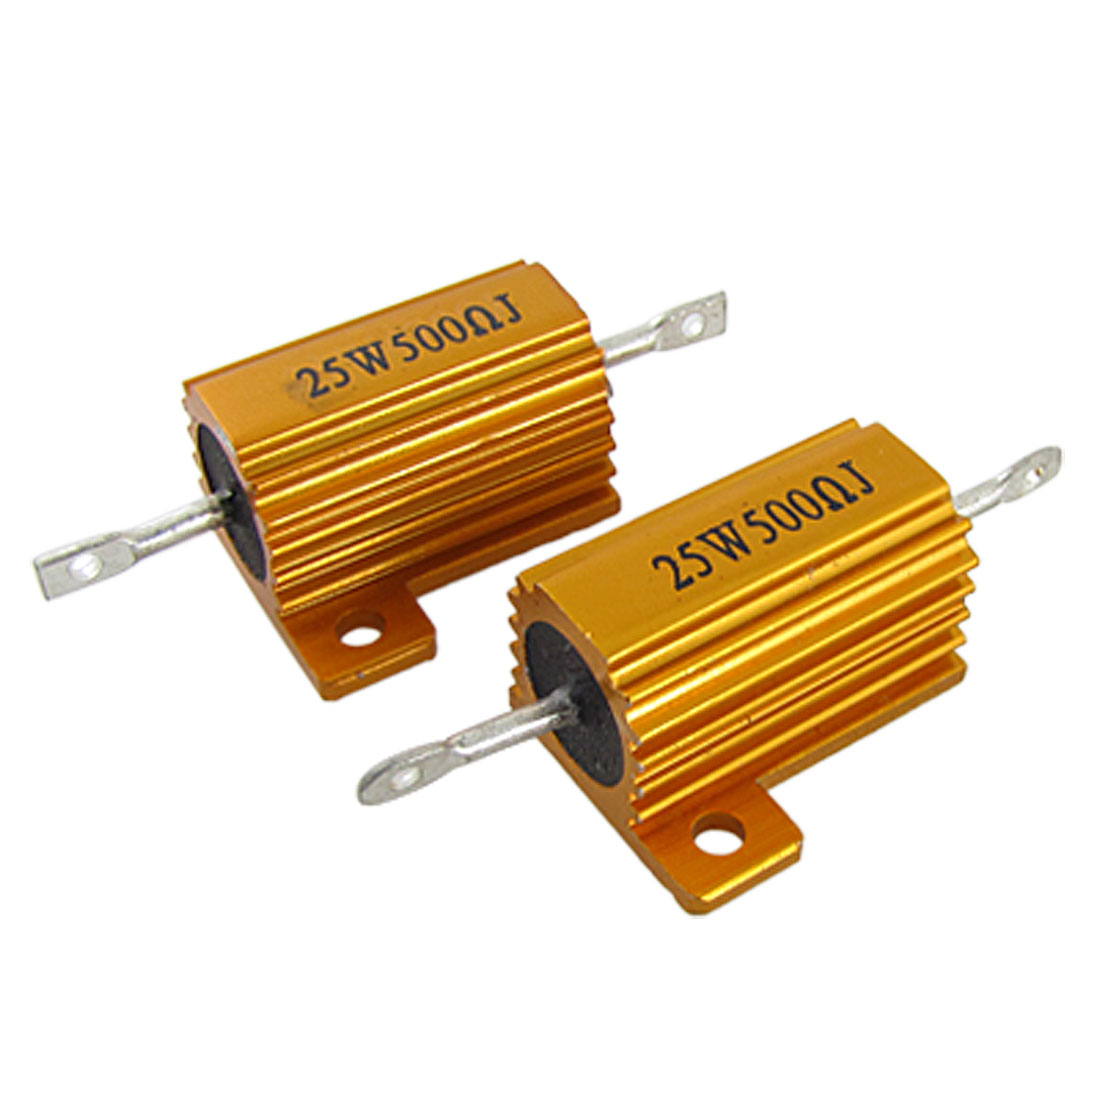 2 Pcs Gold Tone 25W 500 Ohm 5% Aluminum Housed Wire Wound Resistors